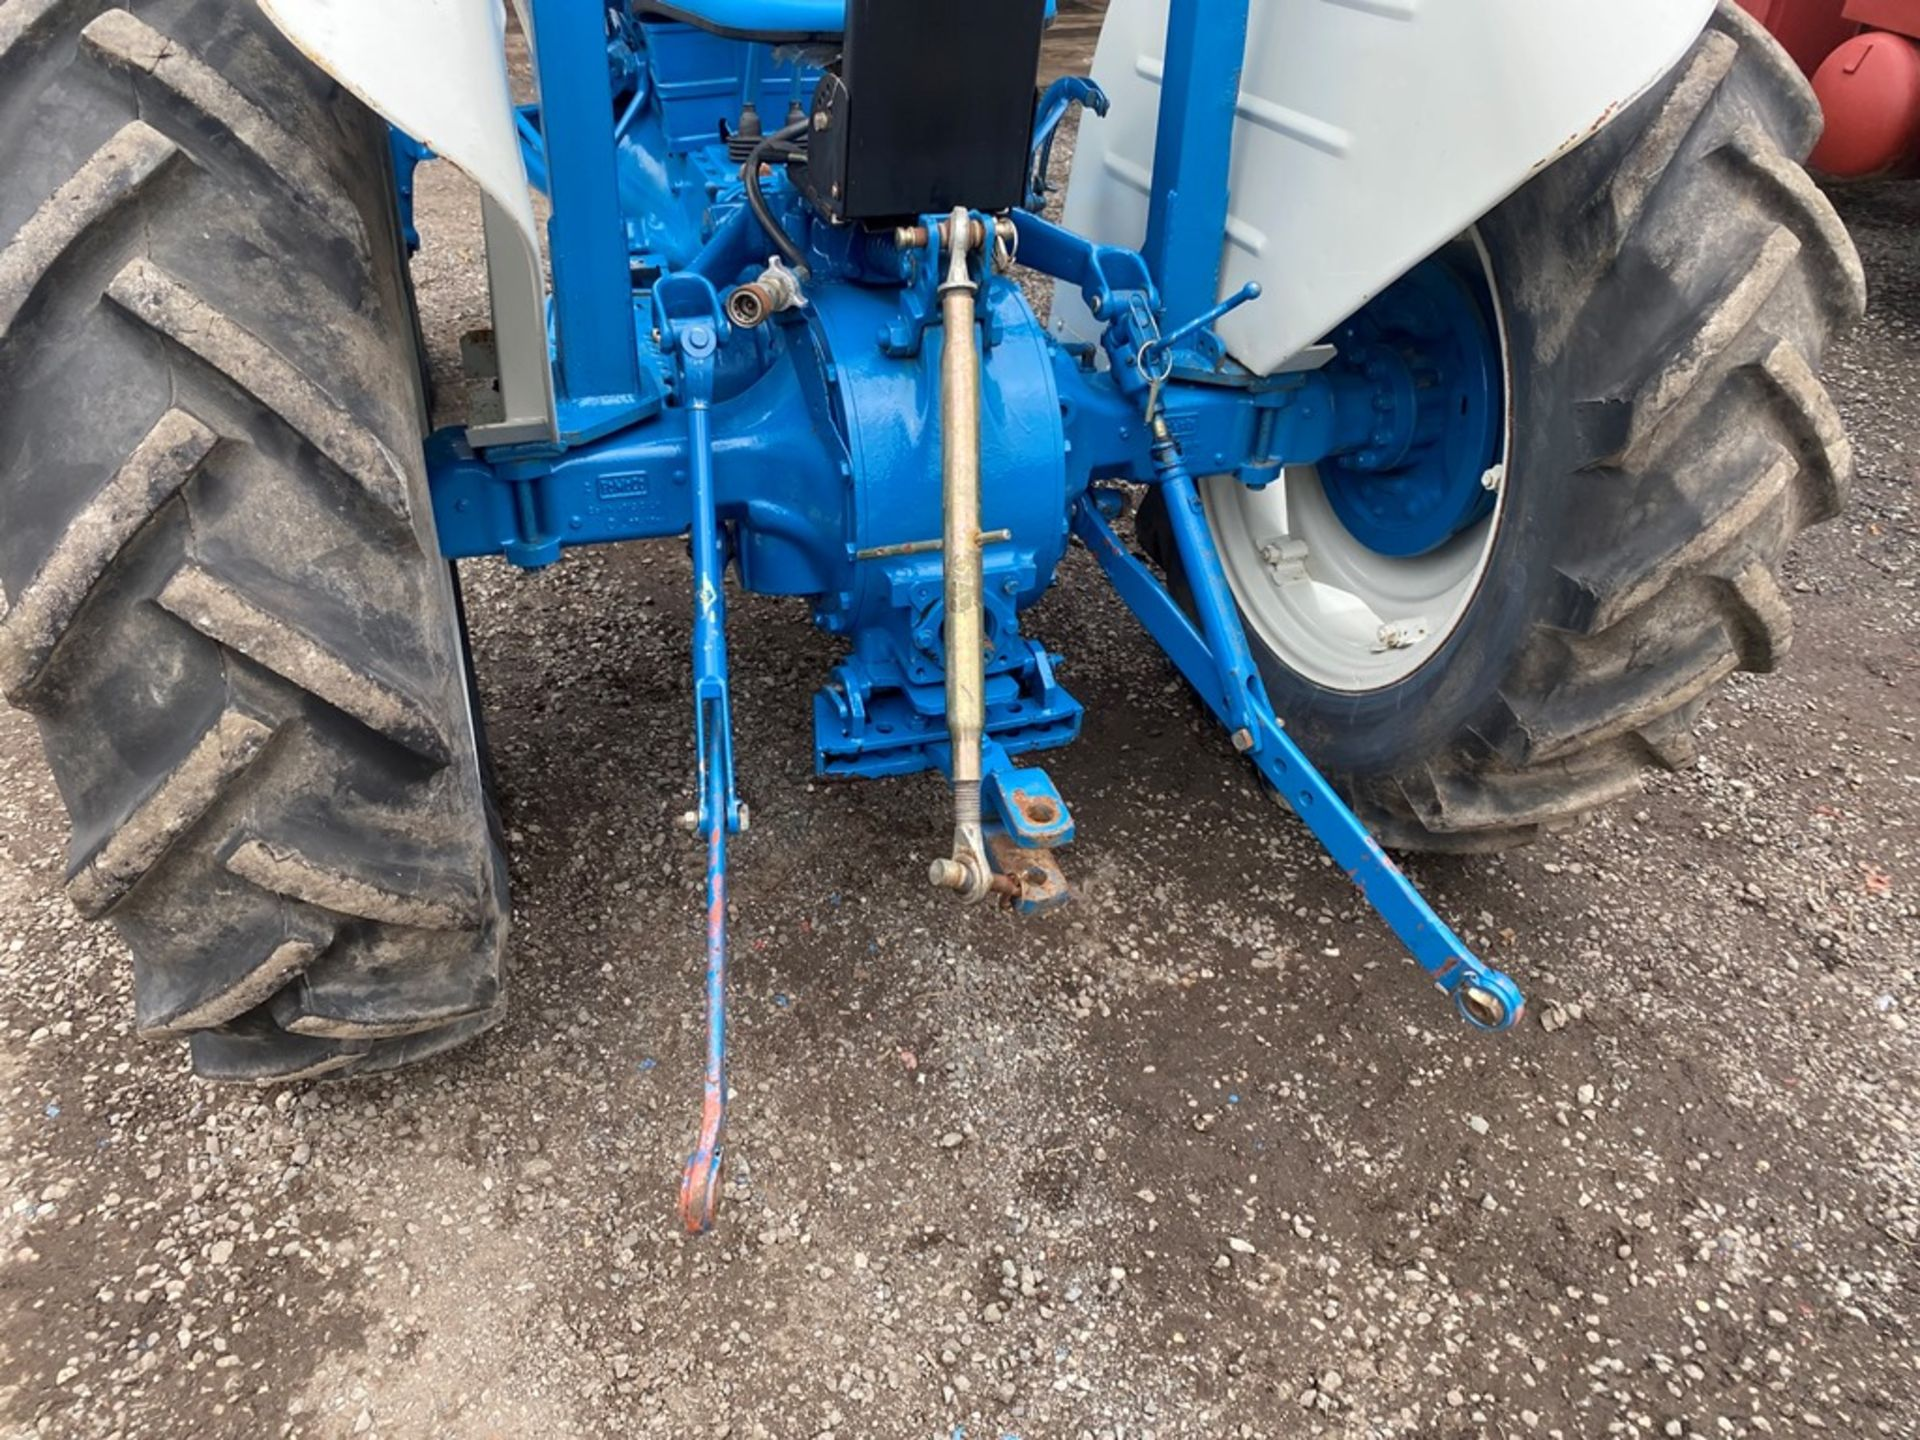 Ford 2000 Agricultural Tractor, vendors comments – nice original condition, clutch is stuck on - Image 5 of 9